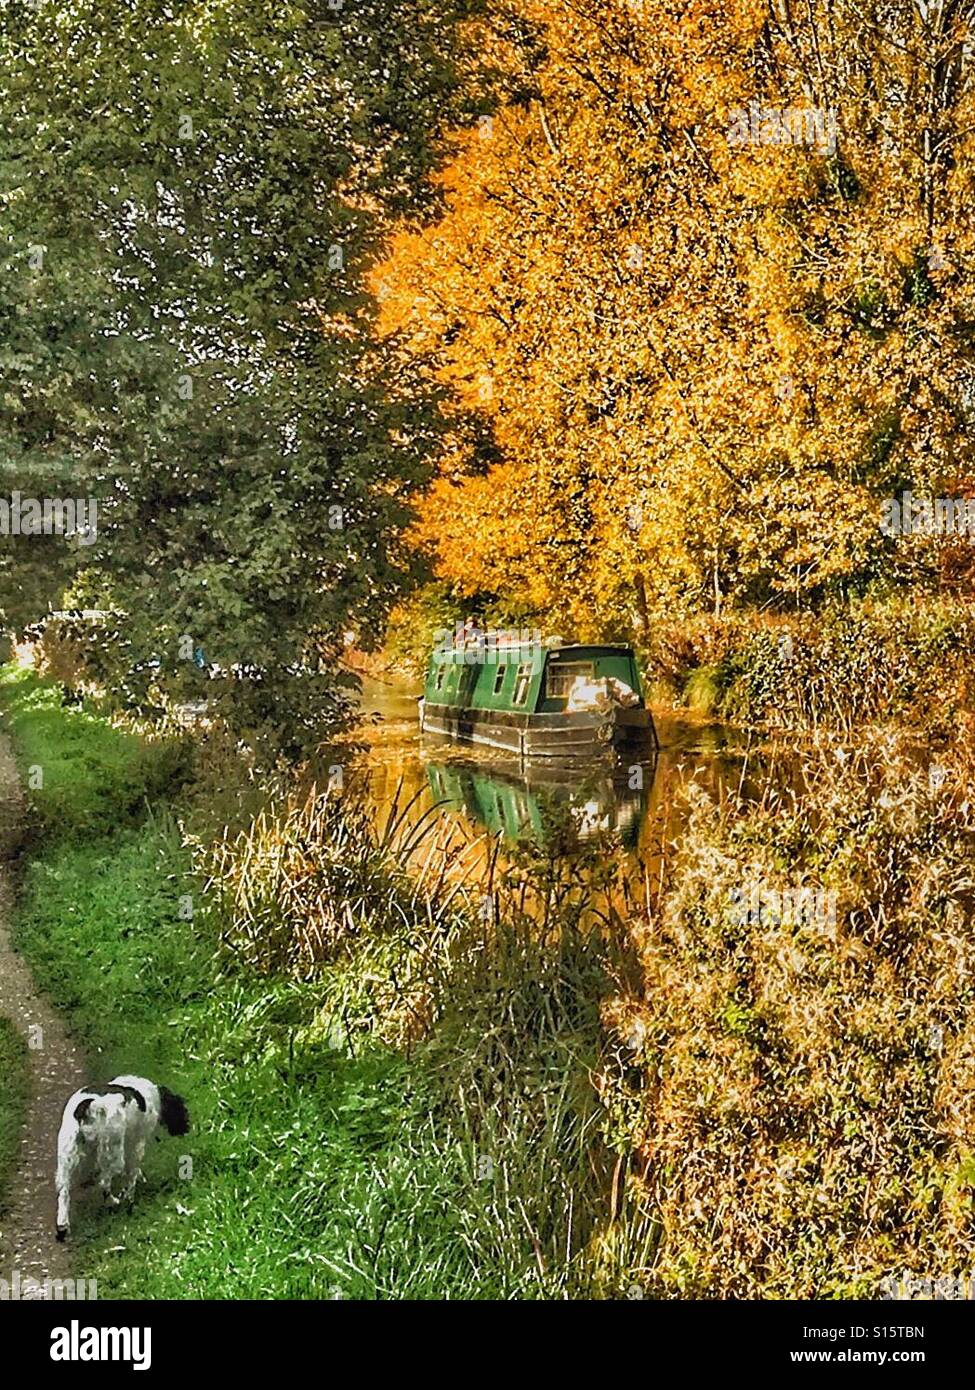 Narrow boat on the Kennet and Avon canal on Hungerford Common on a still autumn day with trees in bright autumn - Stock Image